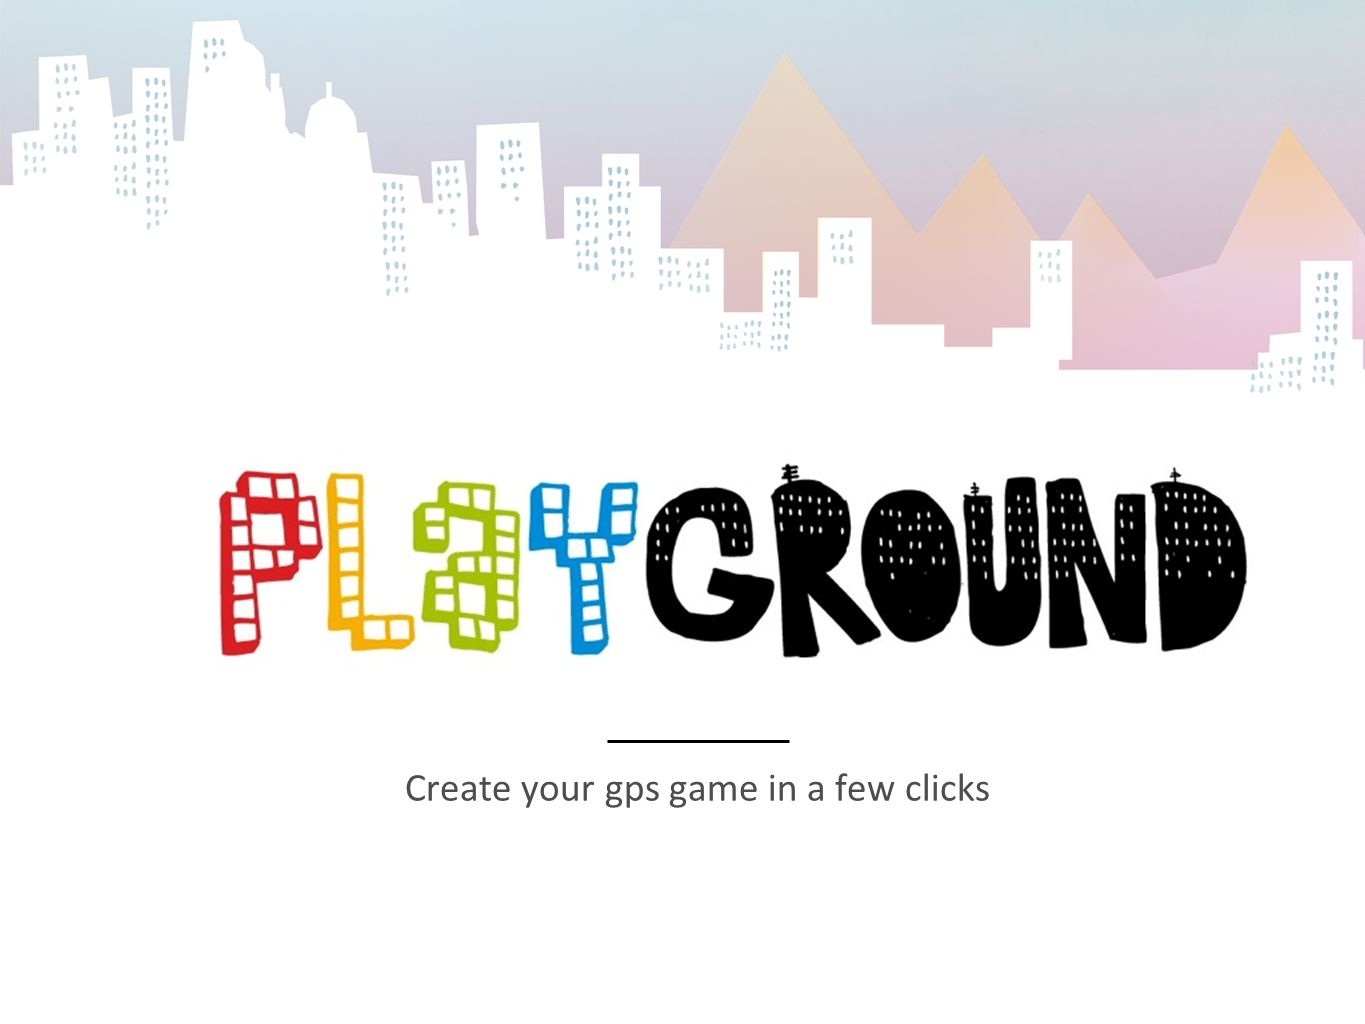 Create your gps game in a few clicks